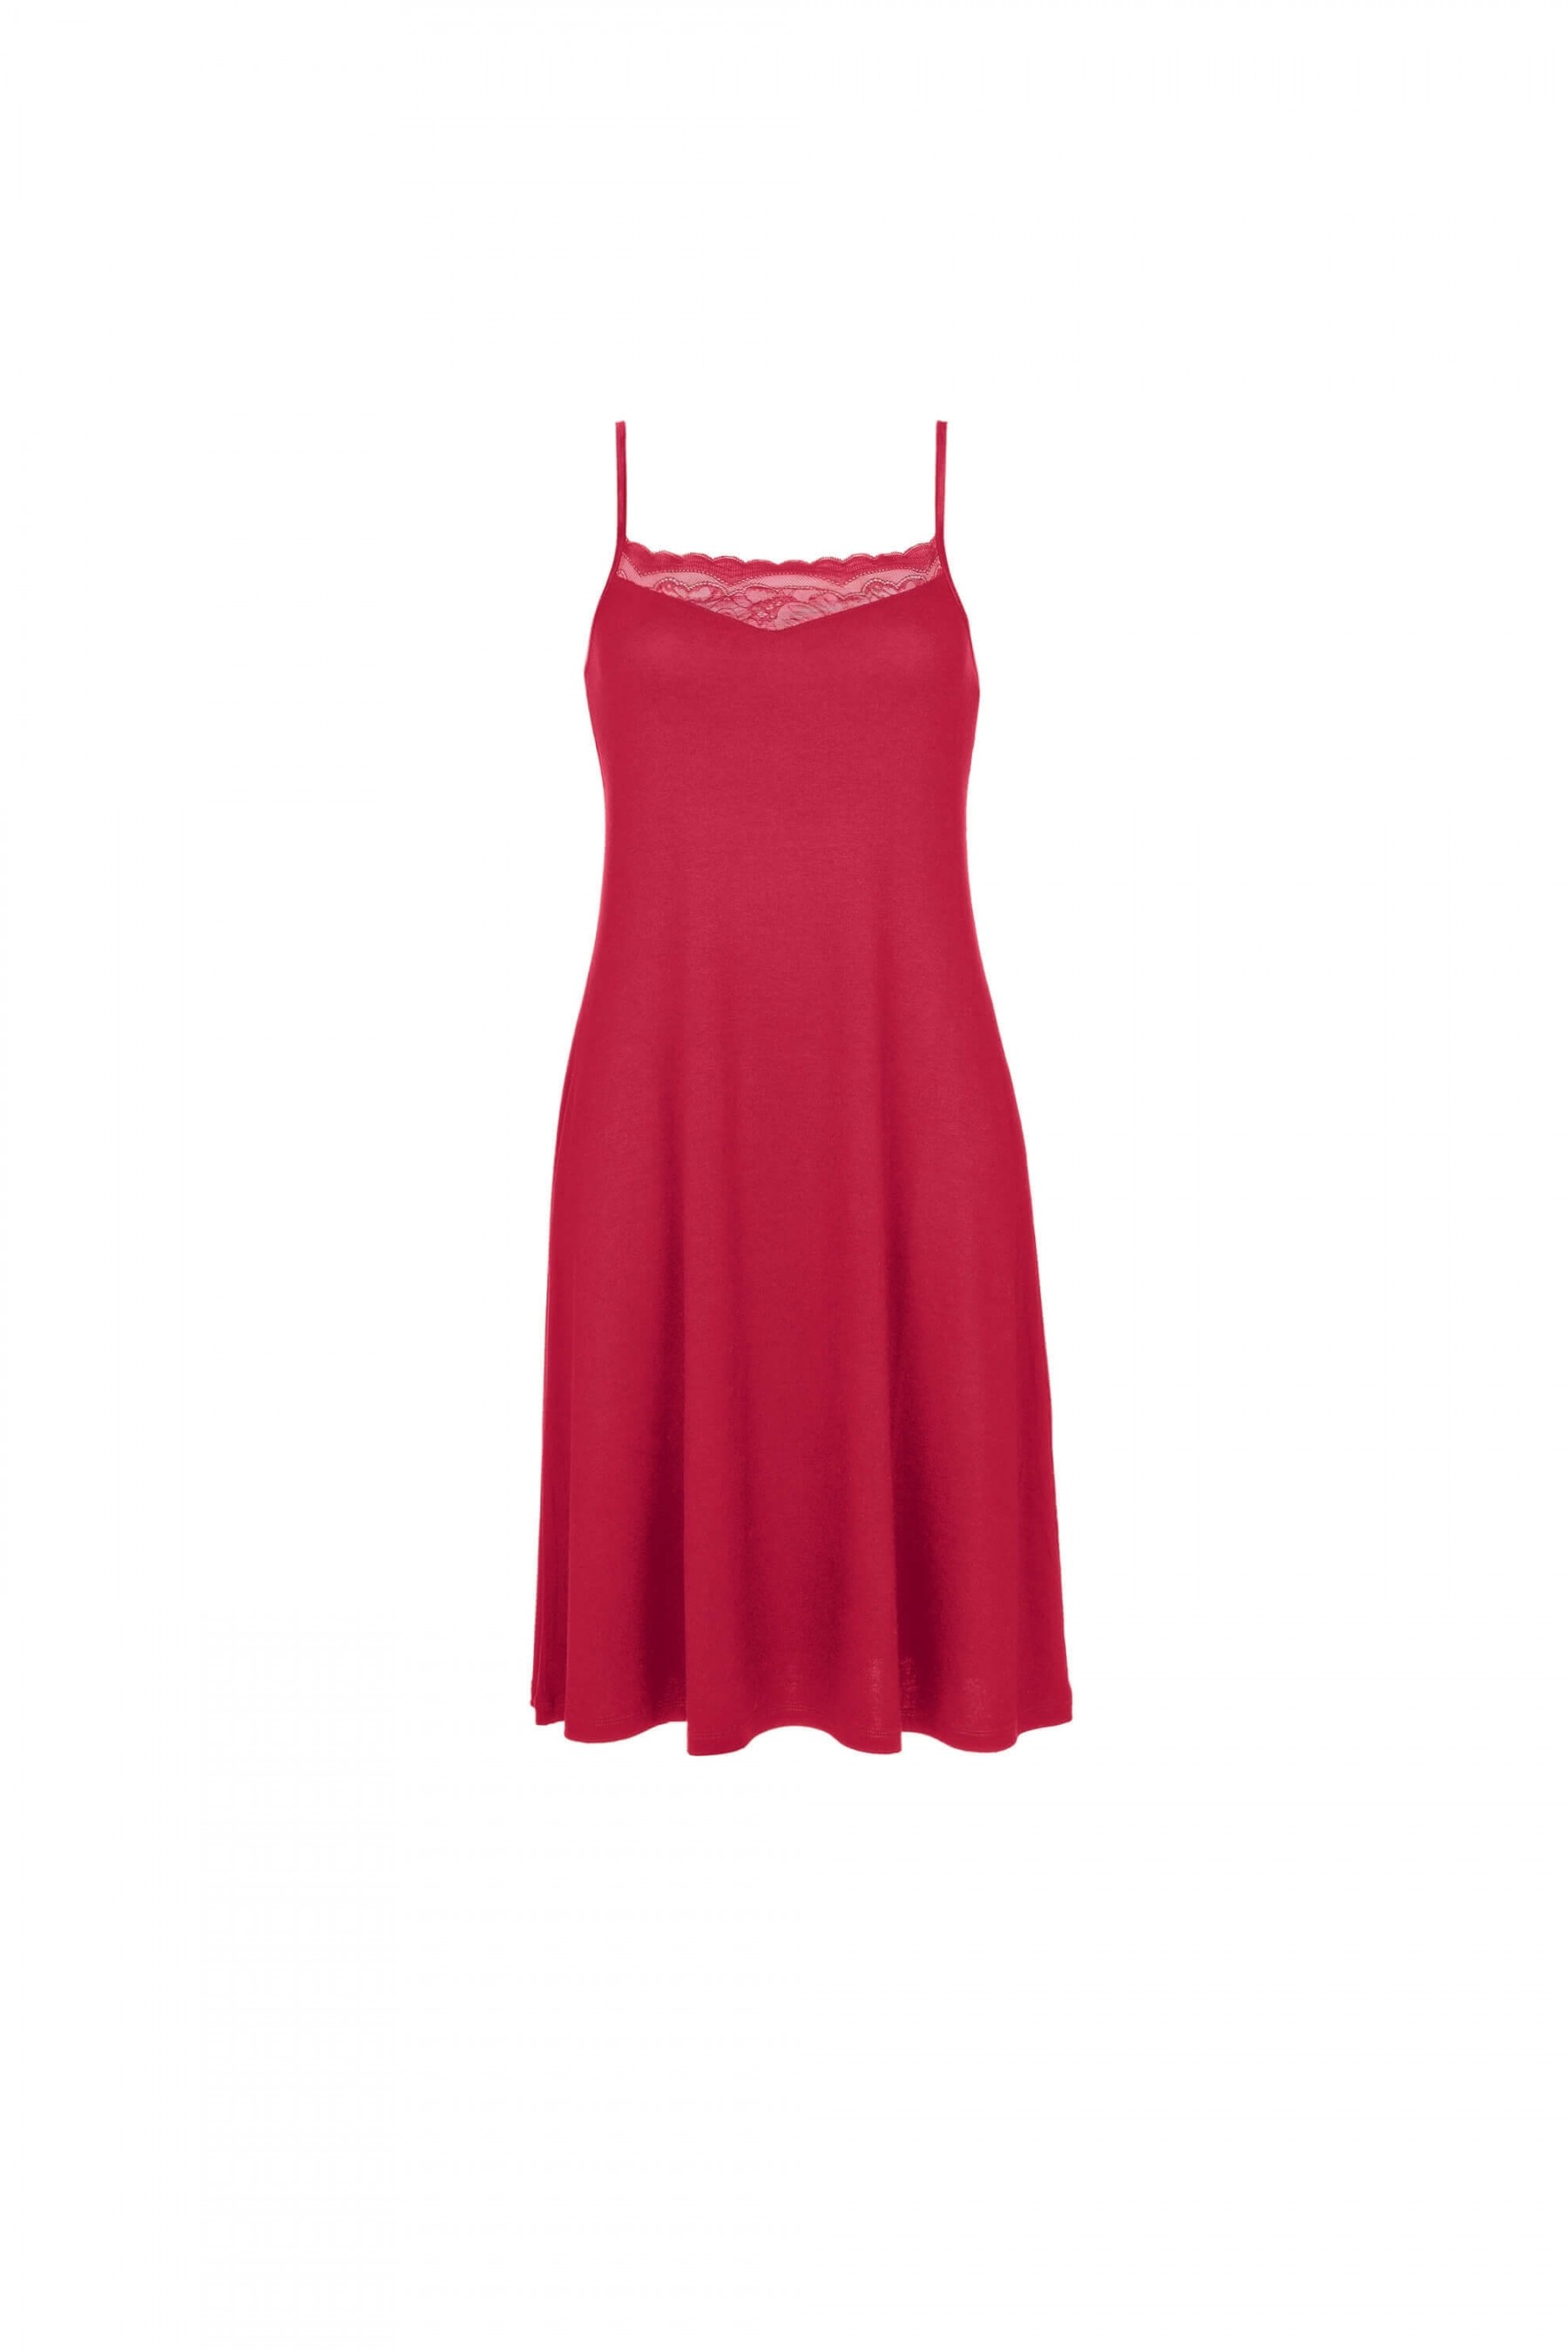 »Evelyn« Nightdress with Straps